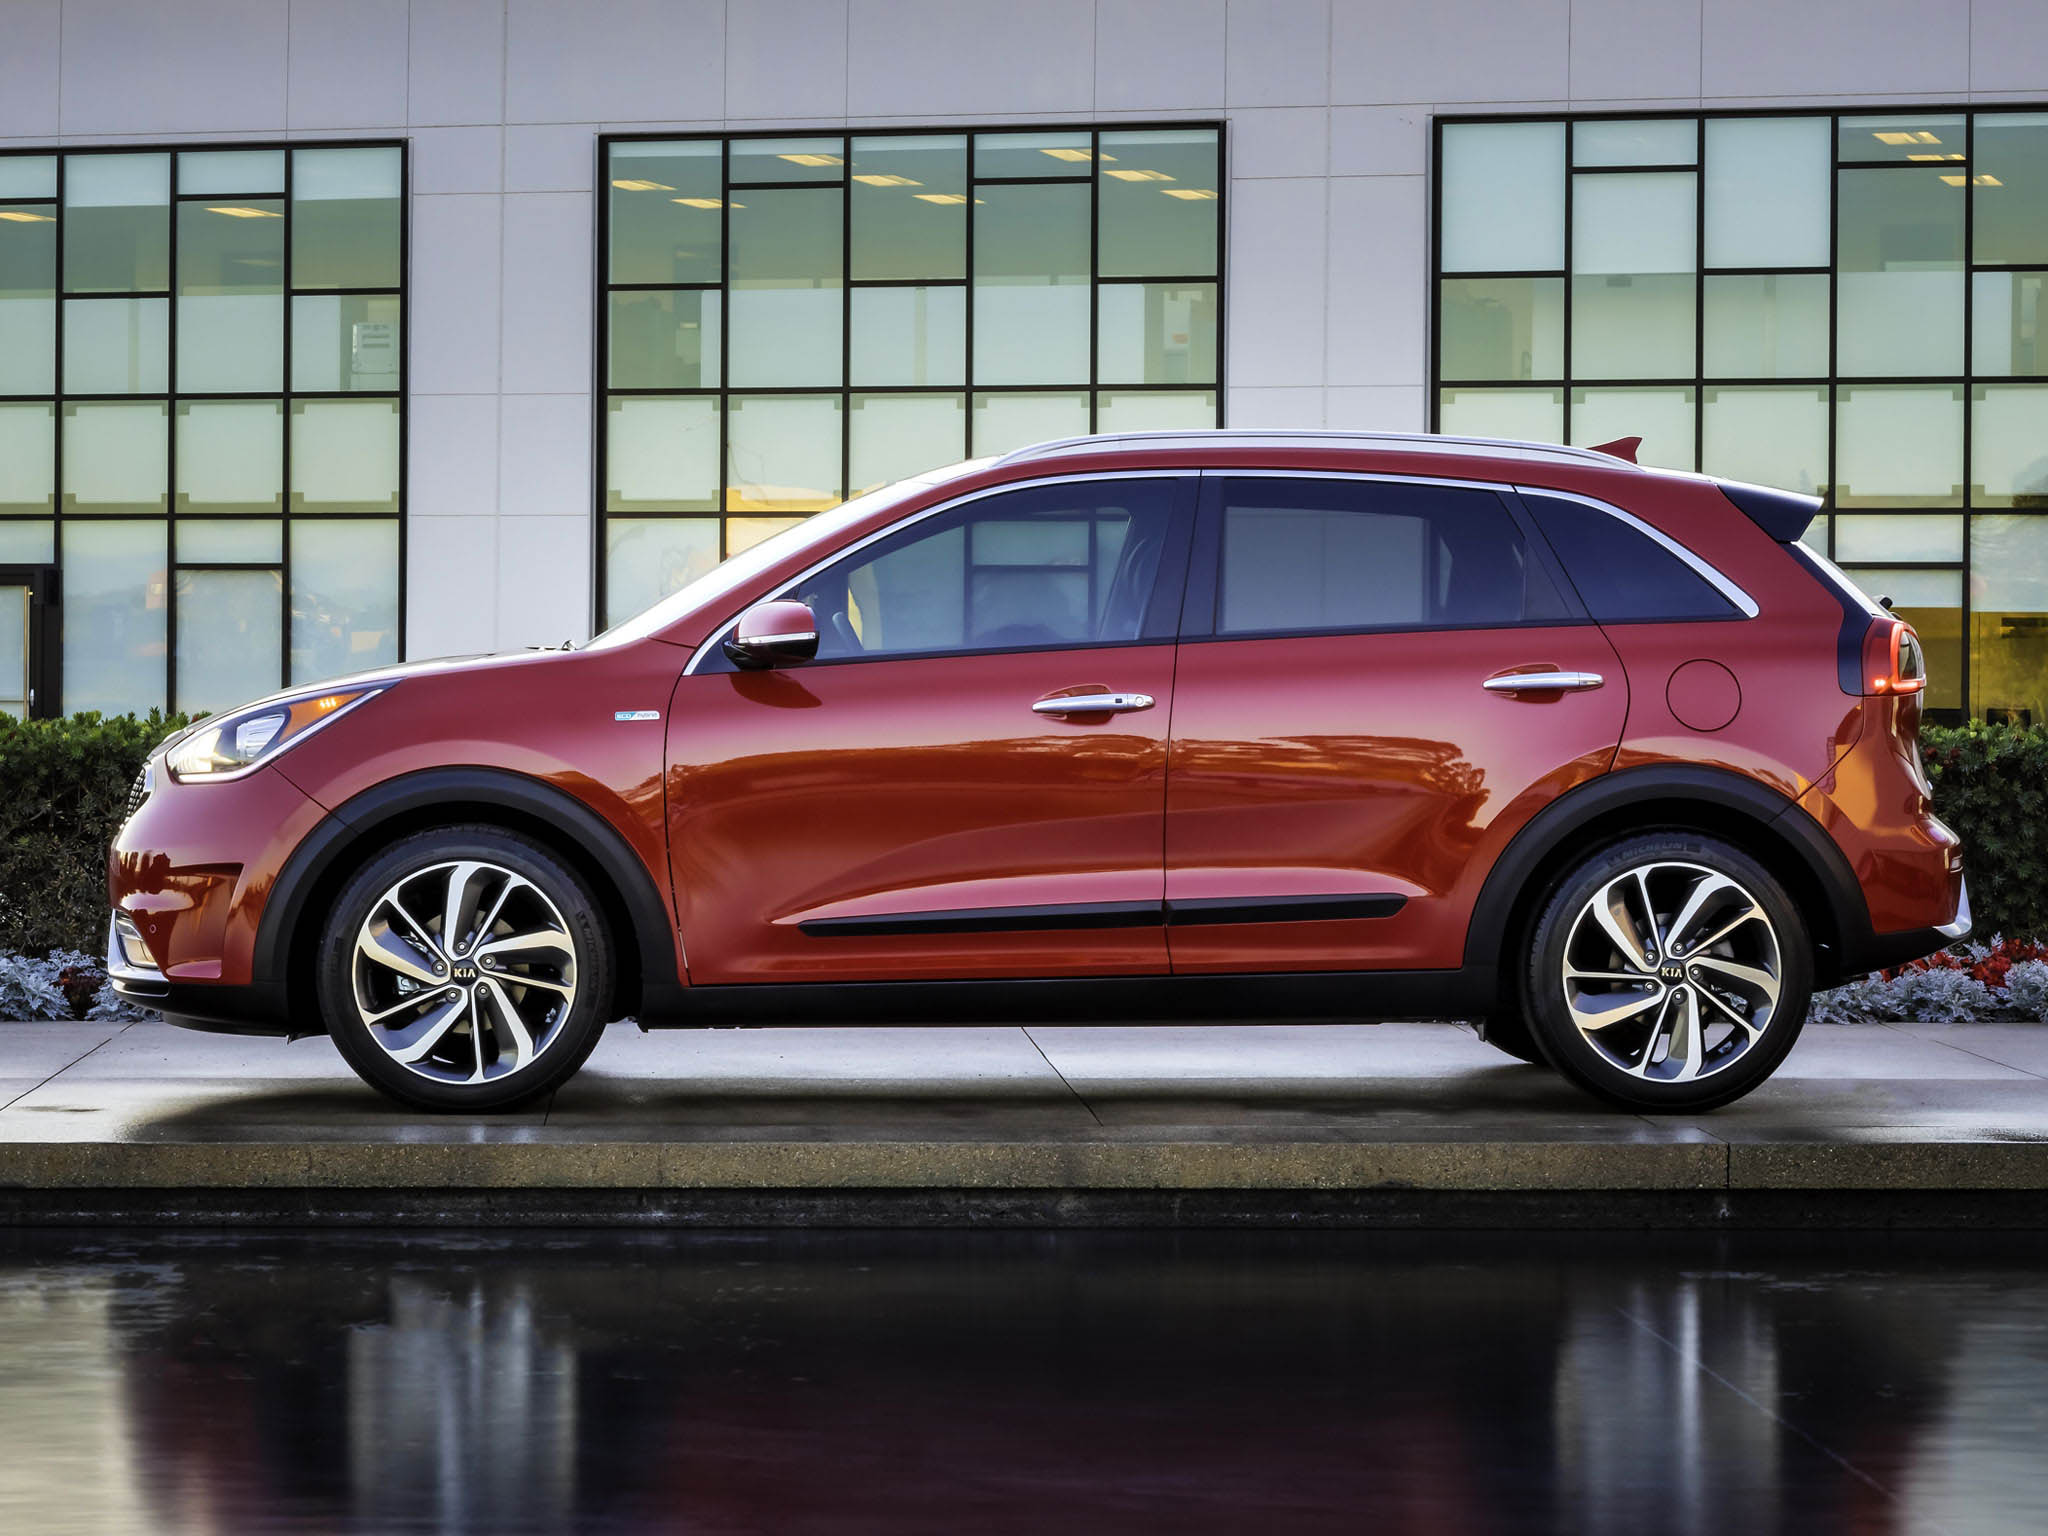 new and used kia niro prices photos reviews specs autos post. Black Bedroom Furniture Sets. Home Design Ideas